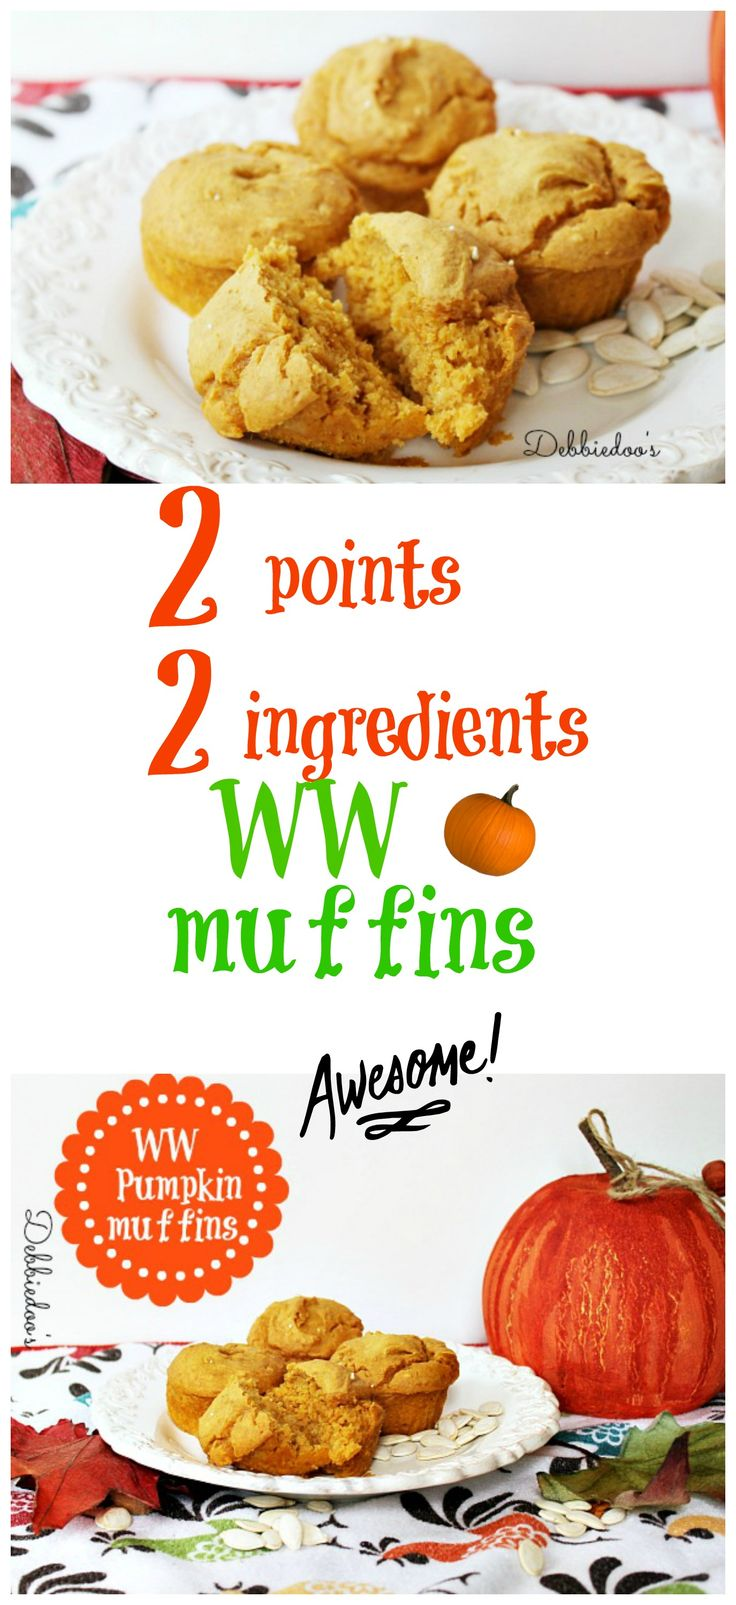 Best weight watchers pumpkin muffins.  2 points, 2 ingredients: 1 box cake mix, 1 15oz can of pumpkin purée. That's it! No eggs or oil! I make these often and they are so delicious! My favorite cake mixes to use are devils food, yellow, carrot, spice, and white. You can really use whatever flavor you'd like. Yummy!